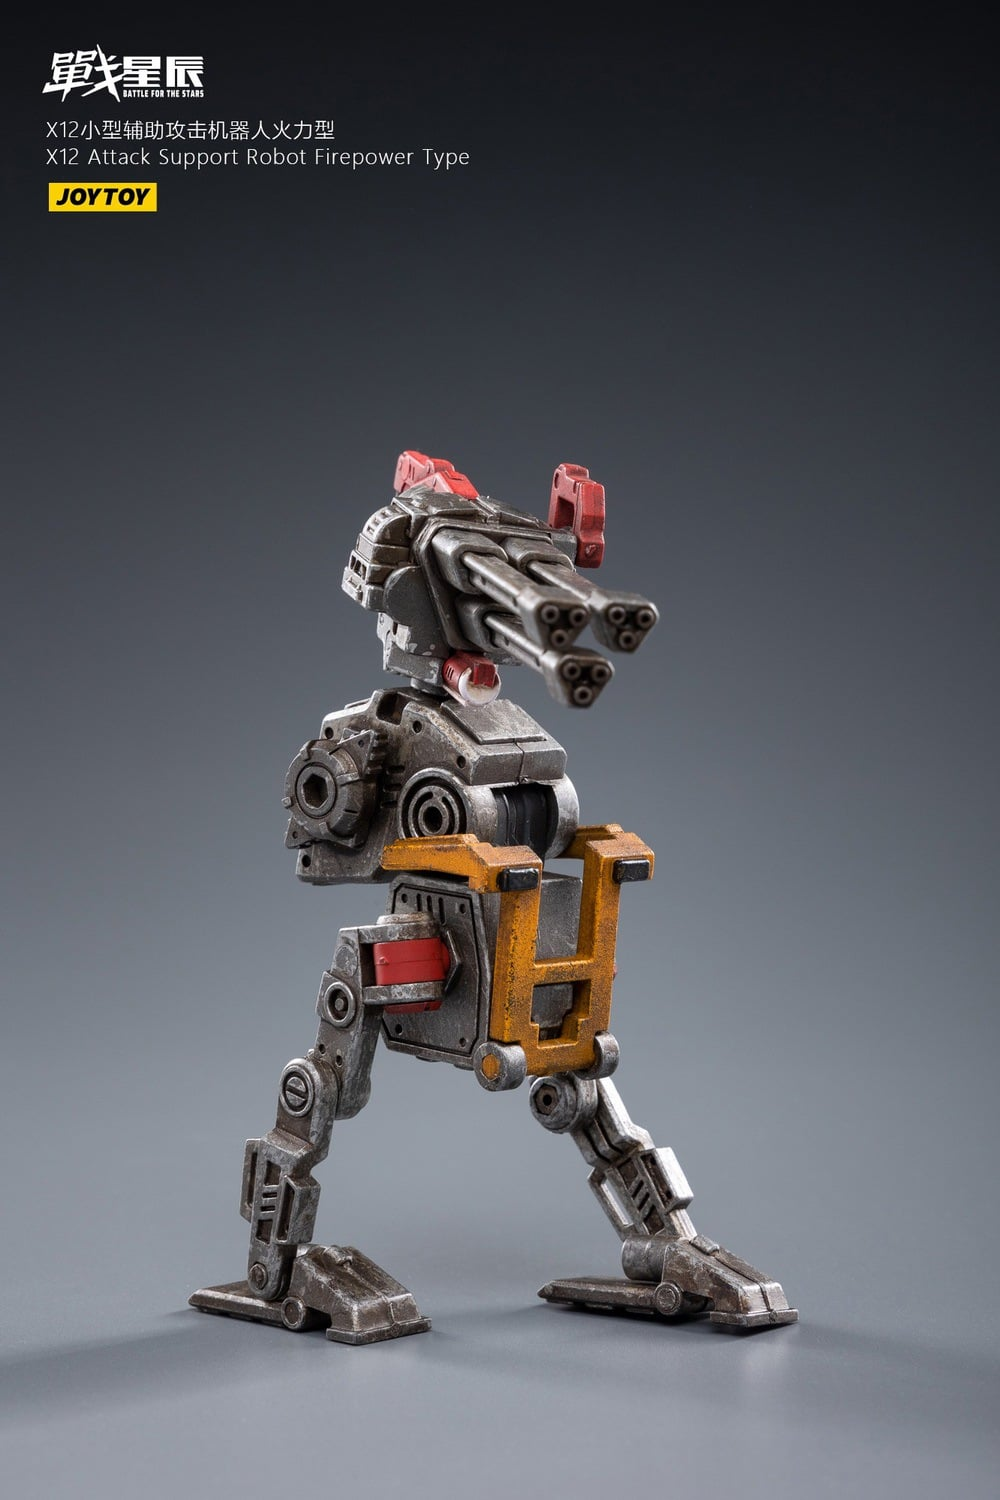 X12 Attack-Support Robot<BR>(Firepower Type - 1:18 Scale)<BR>PREORDER: ETA LATE Q2 2021